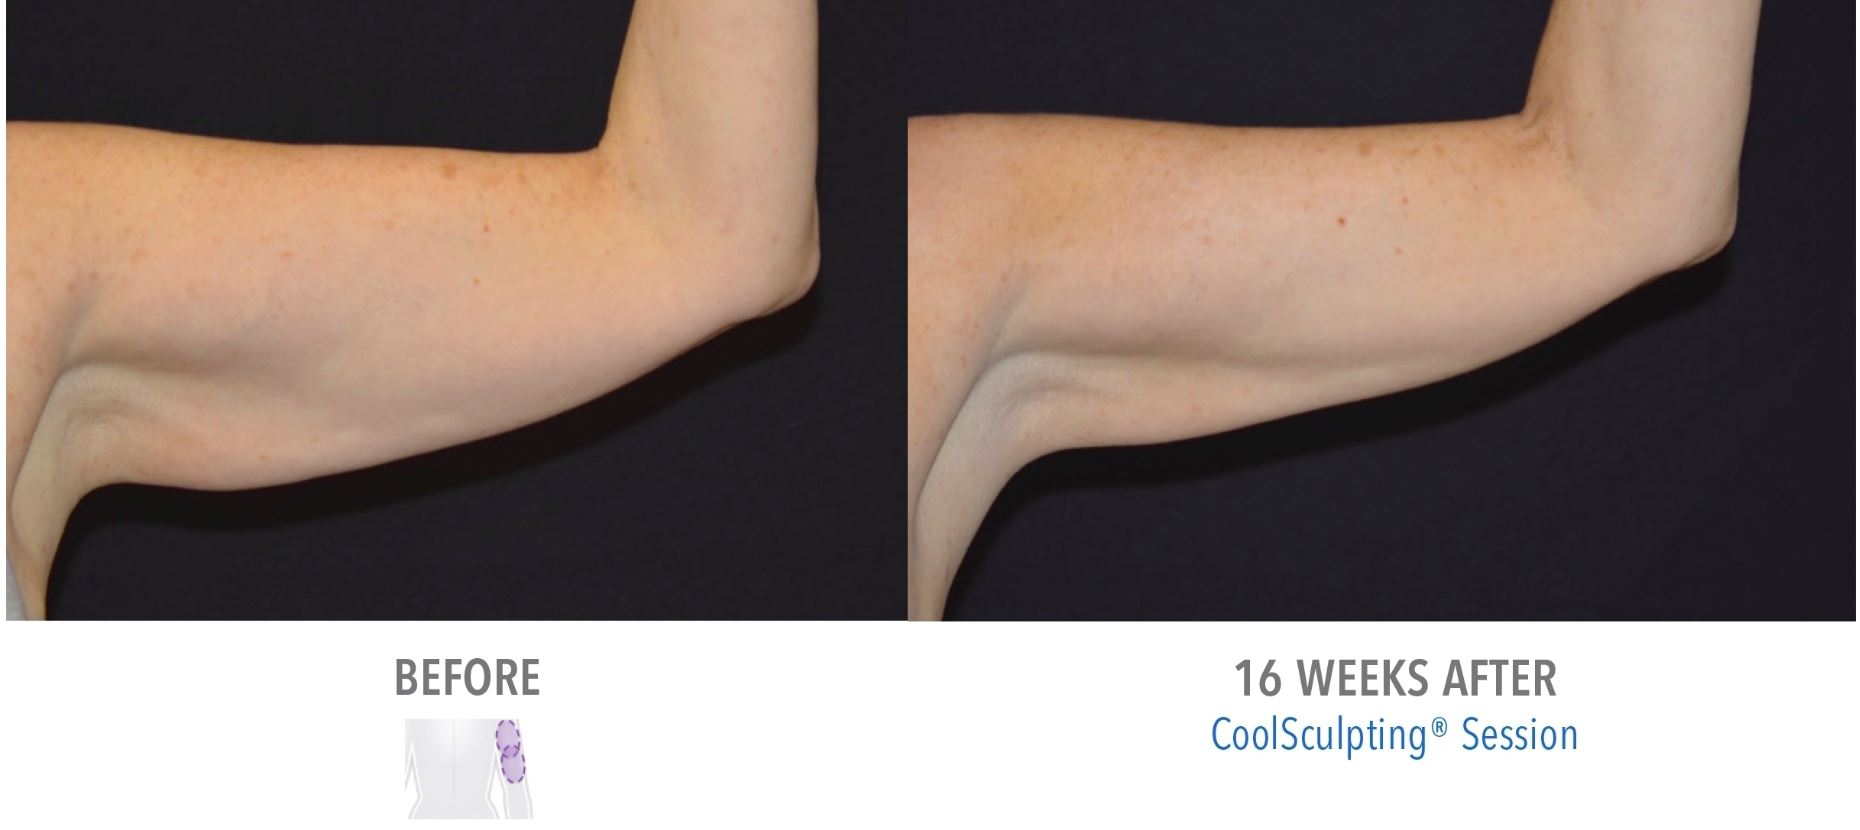 Coolsculpting Arms Before and After Result of Men